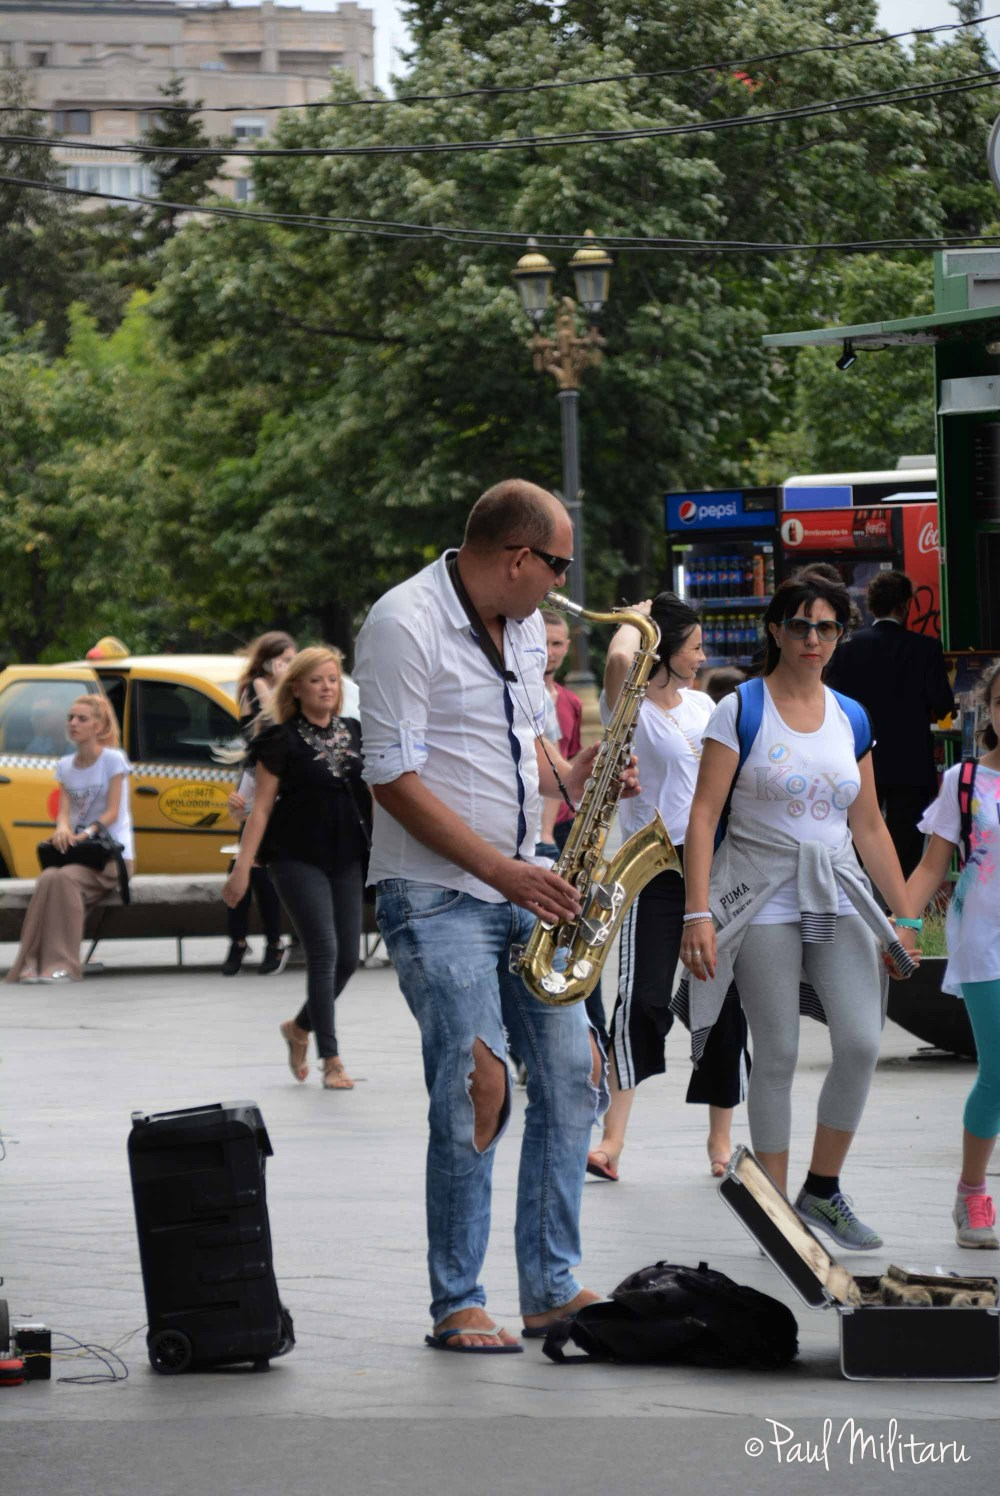 singing at sax on the street